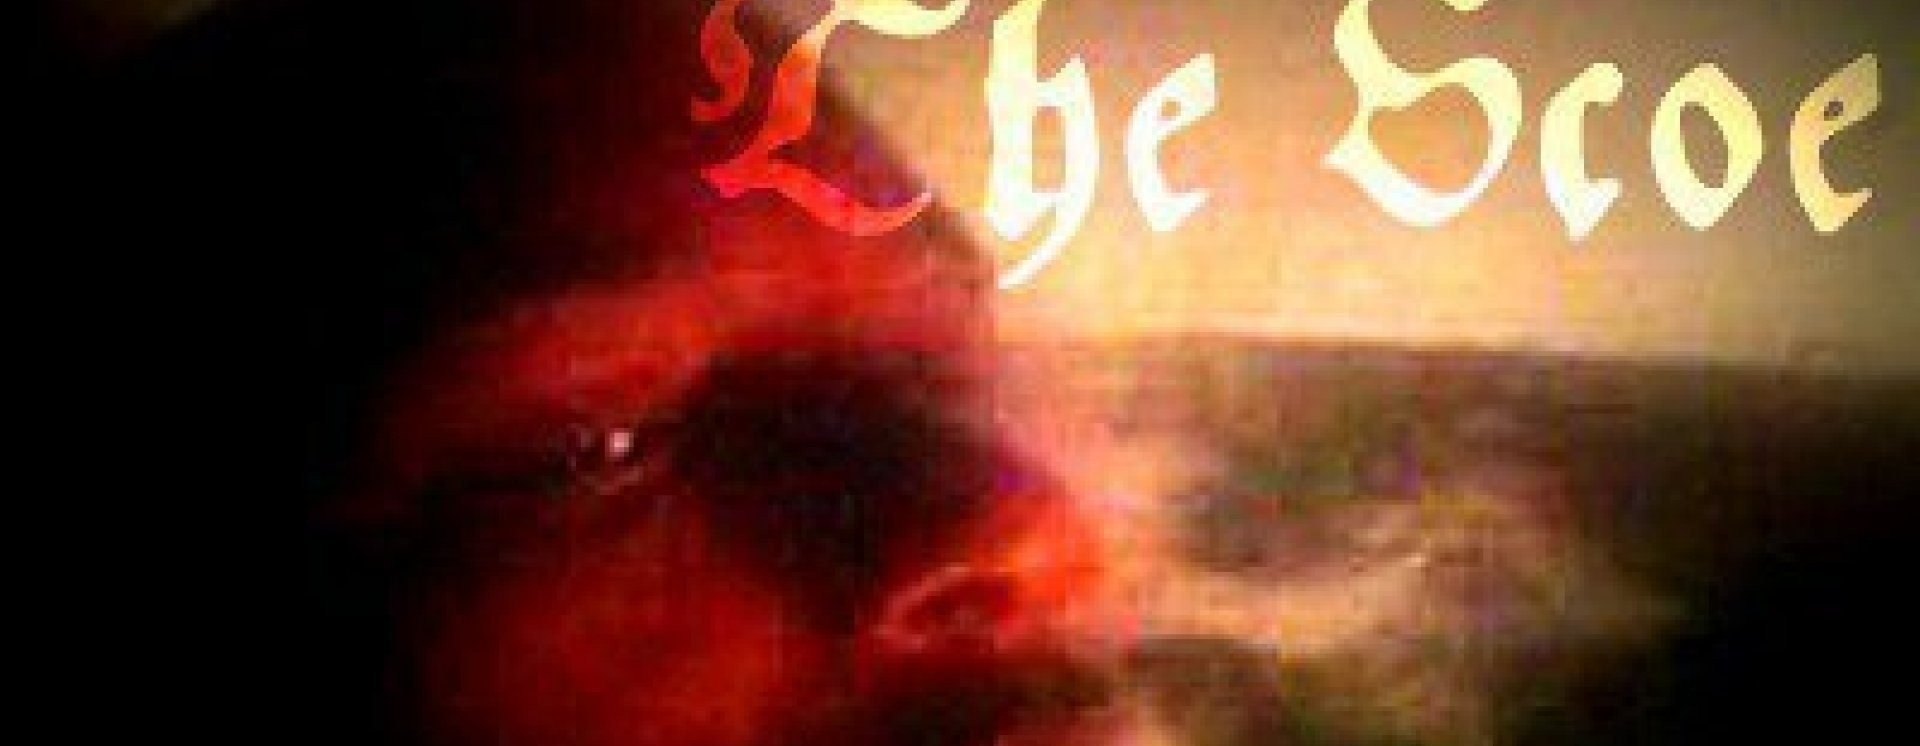 Let Me Rub - The Scoe ft  Miss CeeCee by The Scoe | ReverbNation